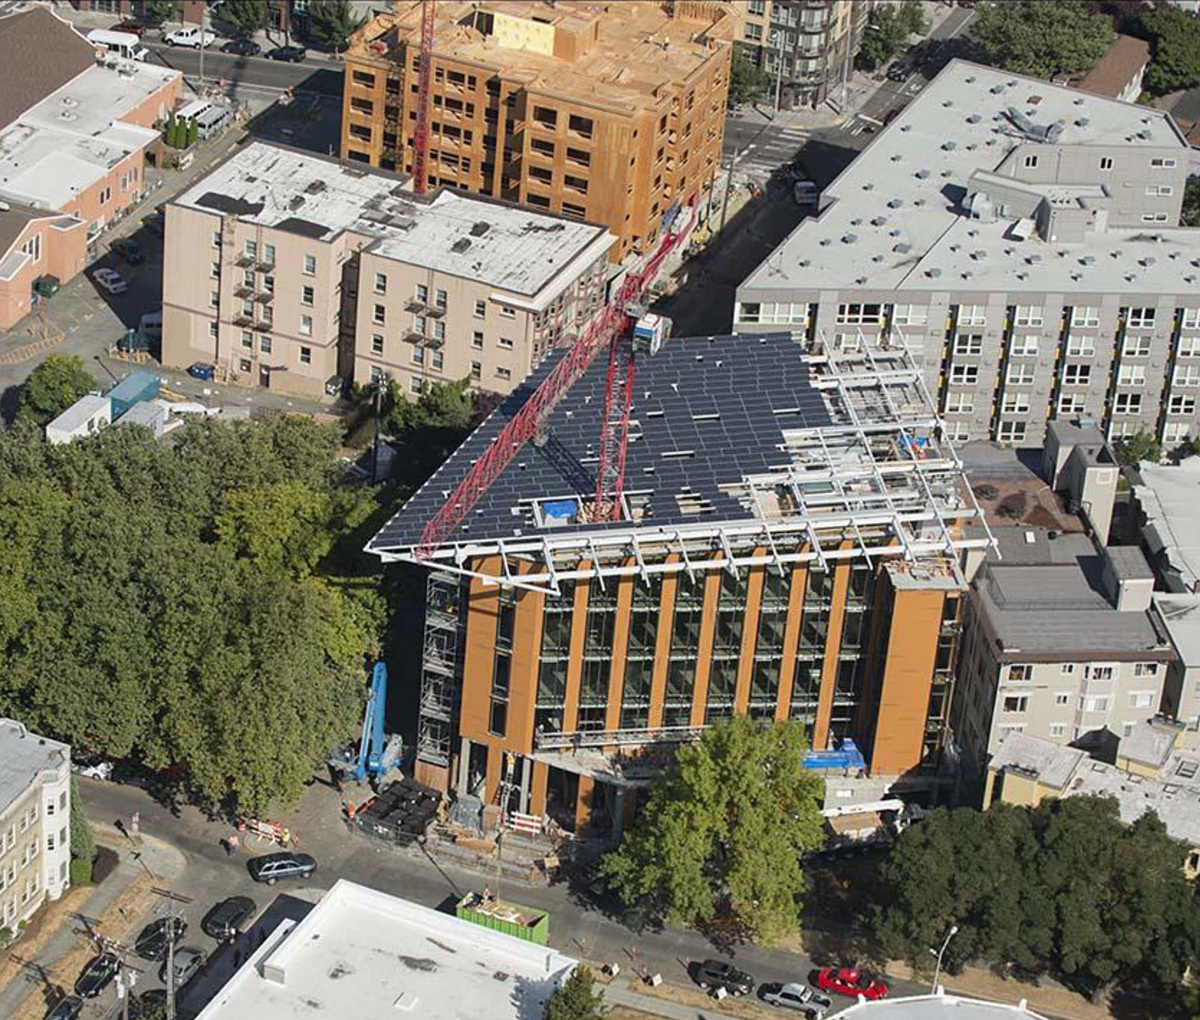 Aerial view of the building under construction